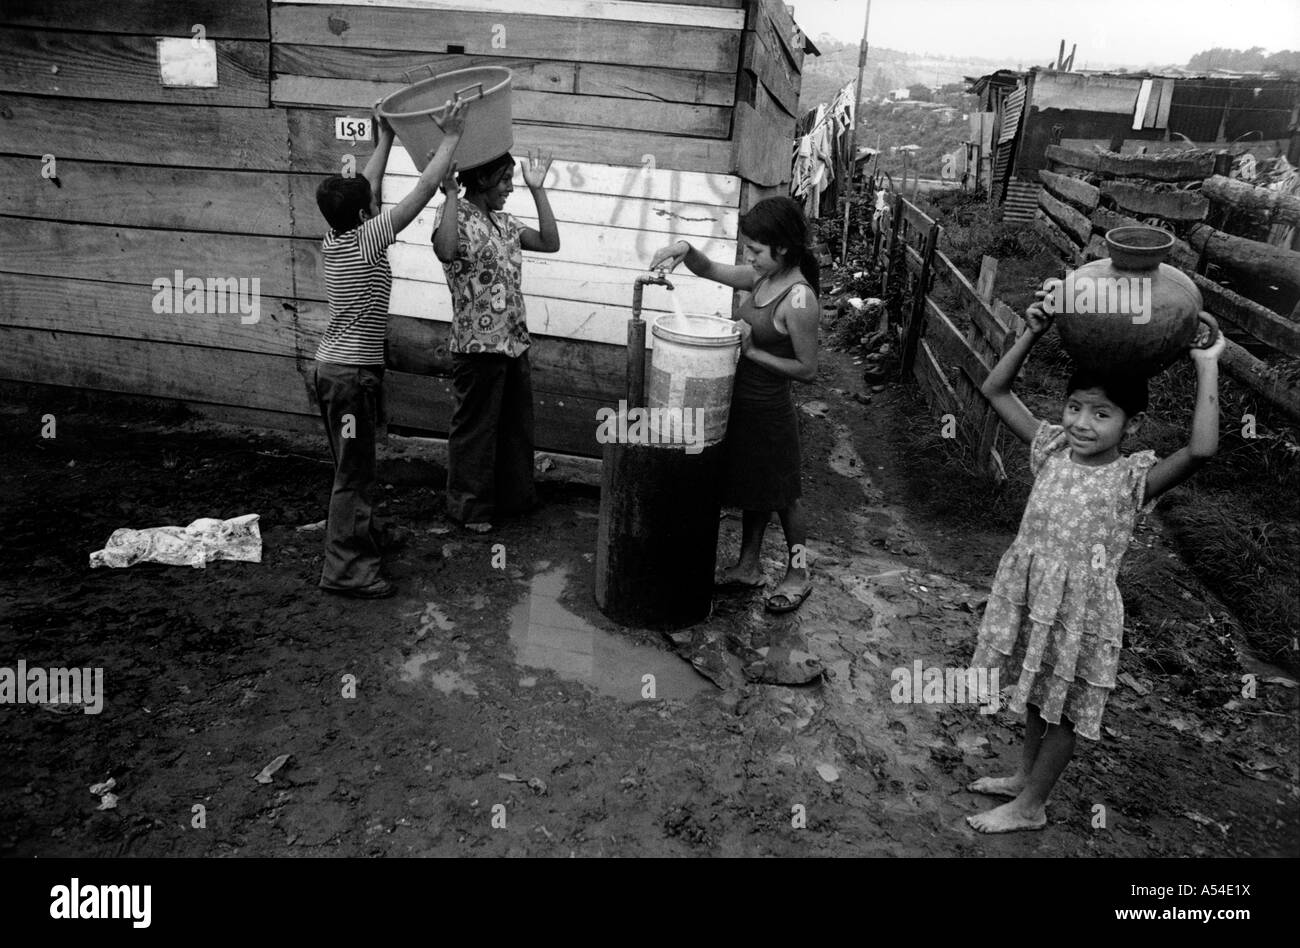 Painet hn1969 564 black and white water taking public standpipe slum guatemala city country developing nation less - Stock Image